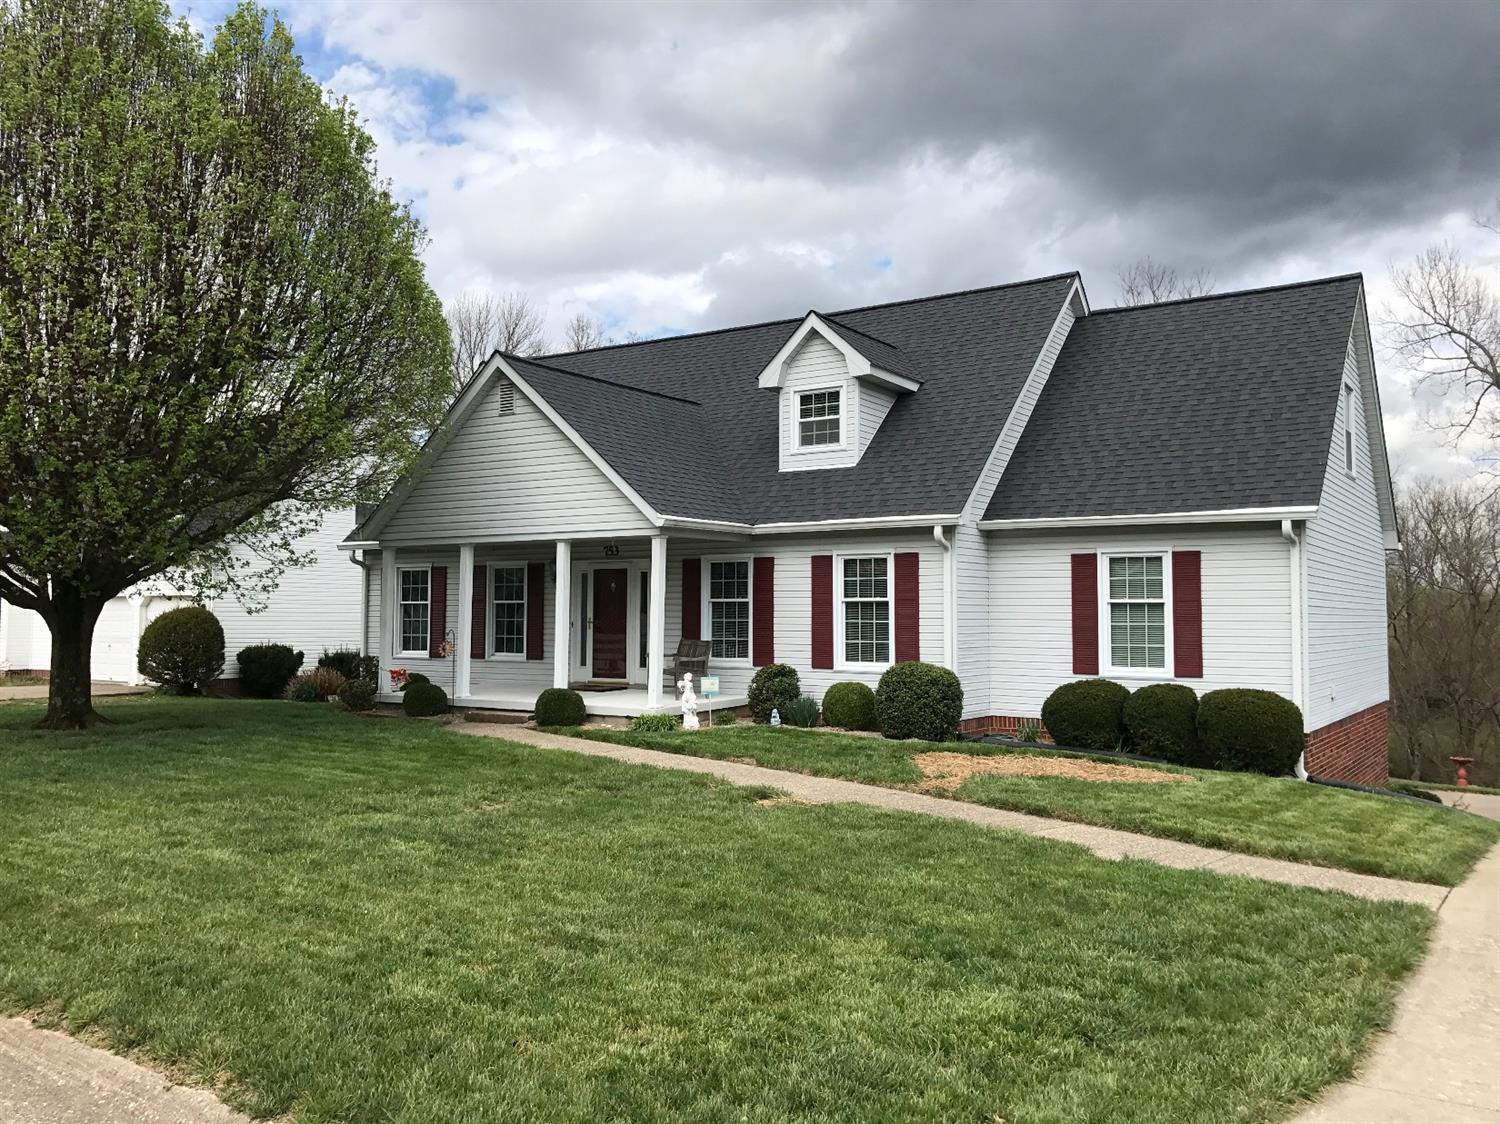 Home For Sale at 753 Isaac Shelby Cir, Frankfort, KY 40601